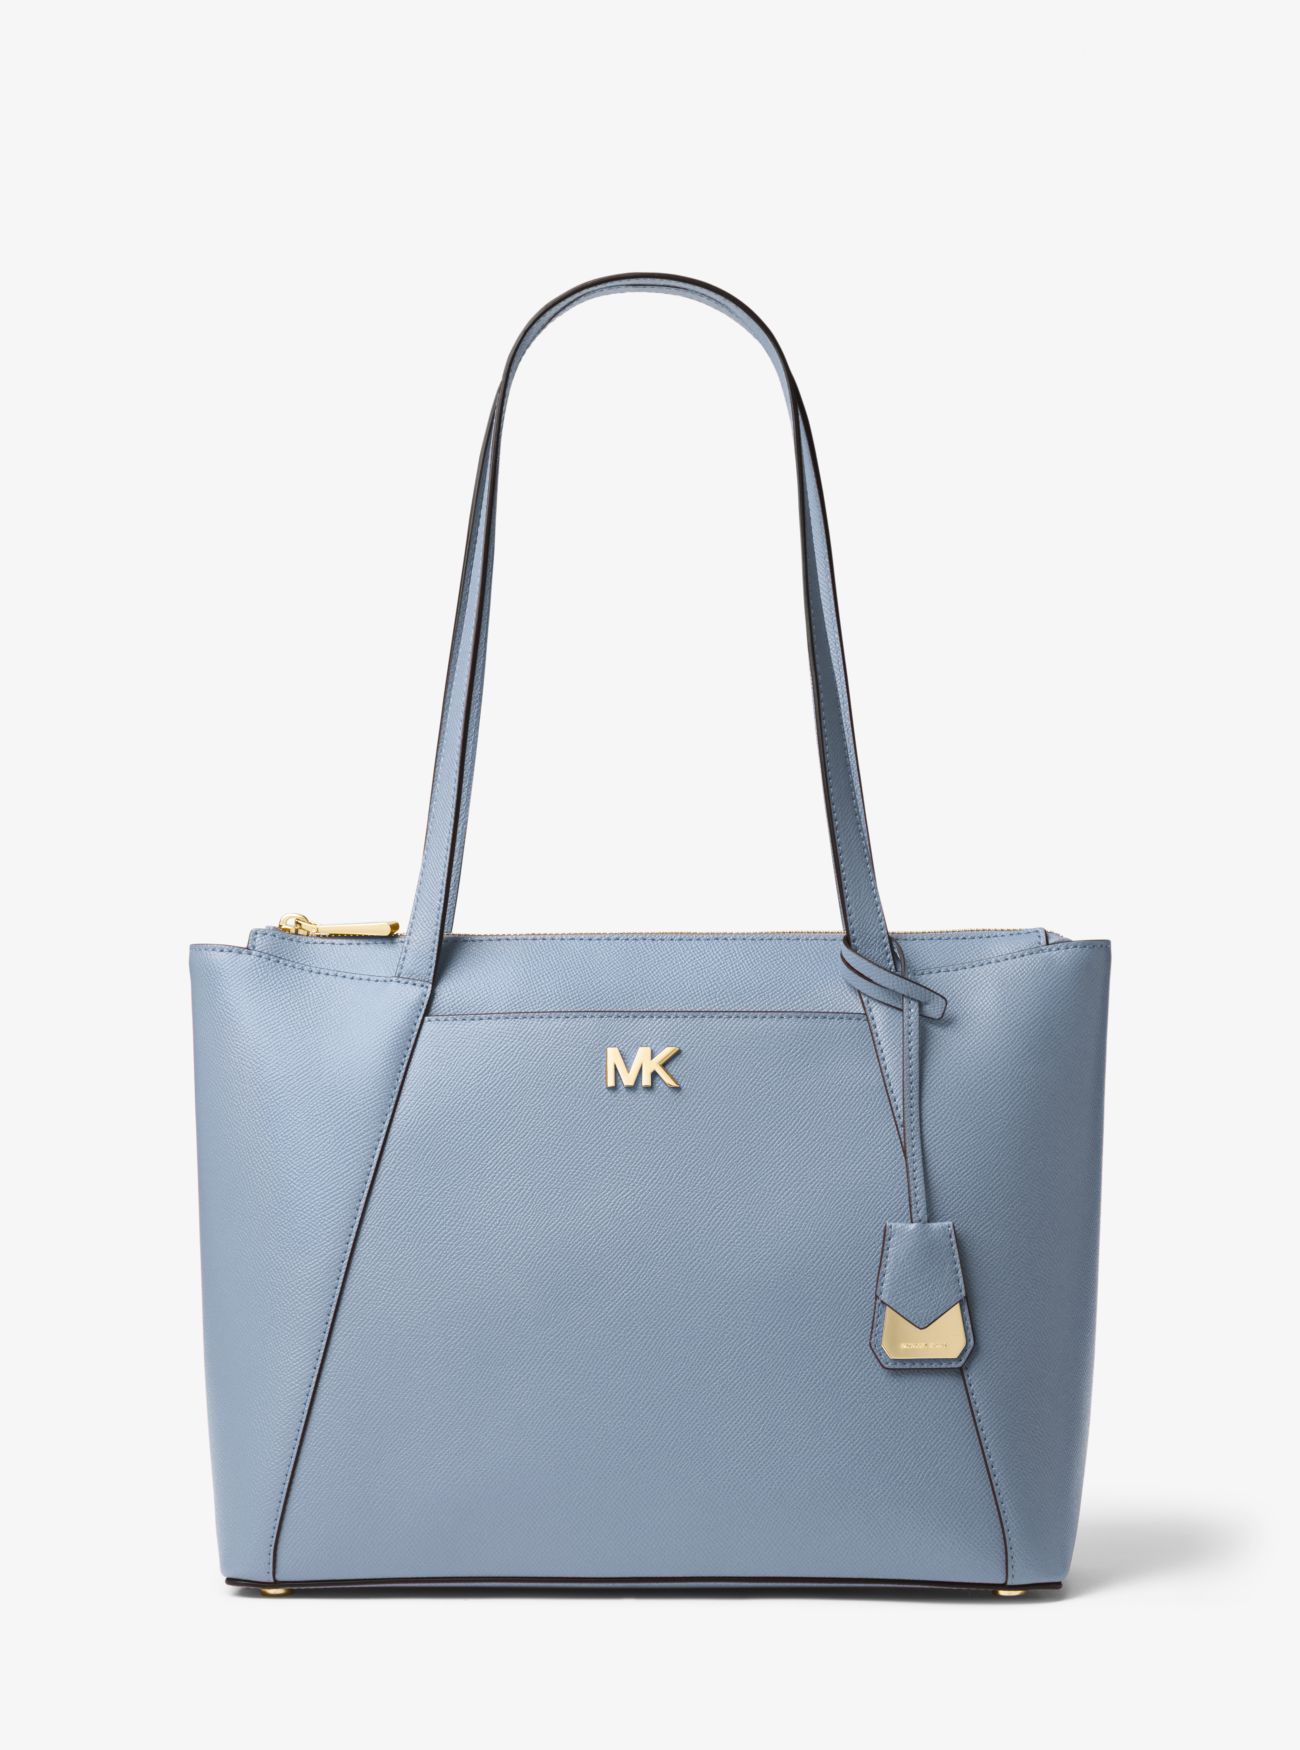 87bcb7779ce8 Michael Kors Handbags Are on Up to 75% Off for a Labor Day Sale